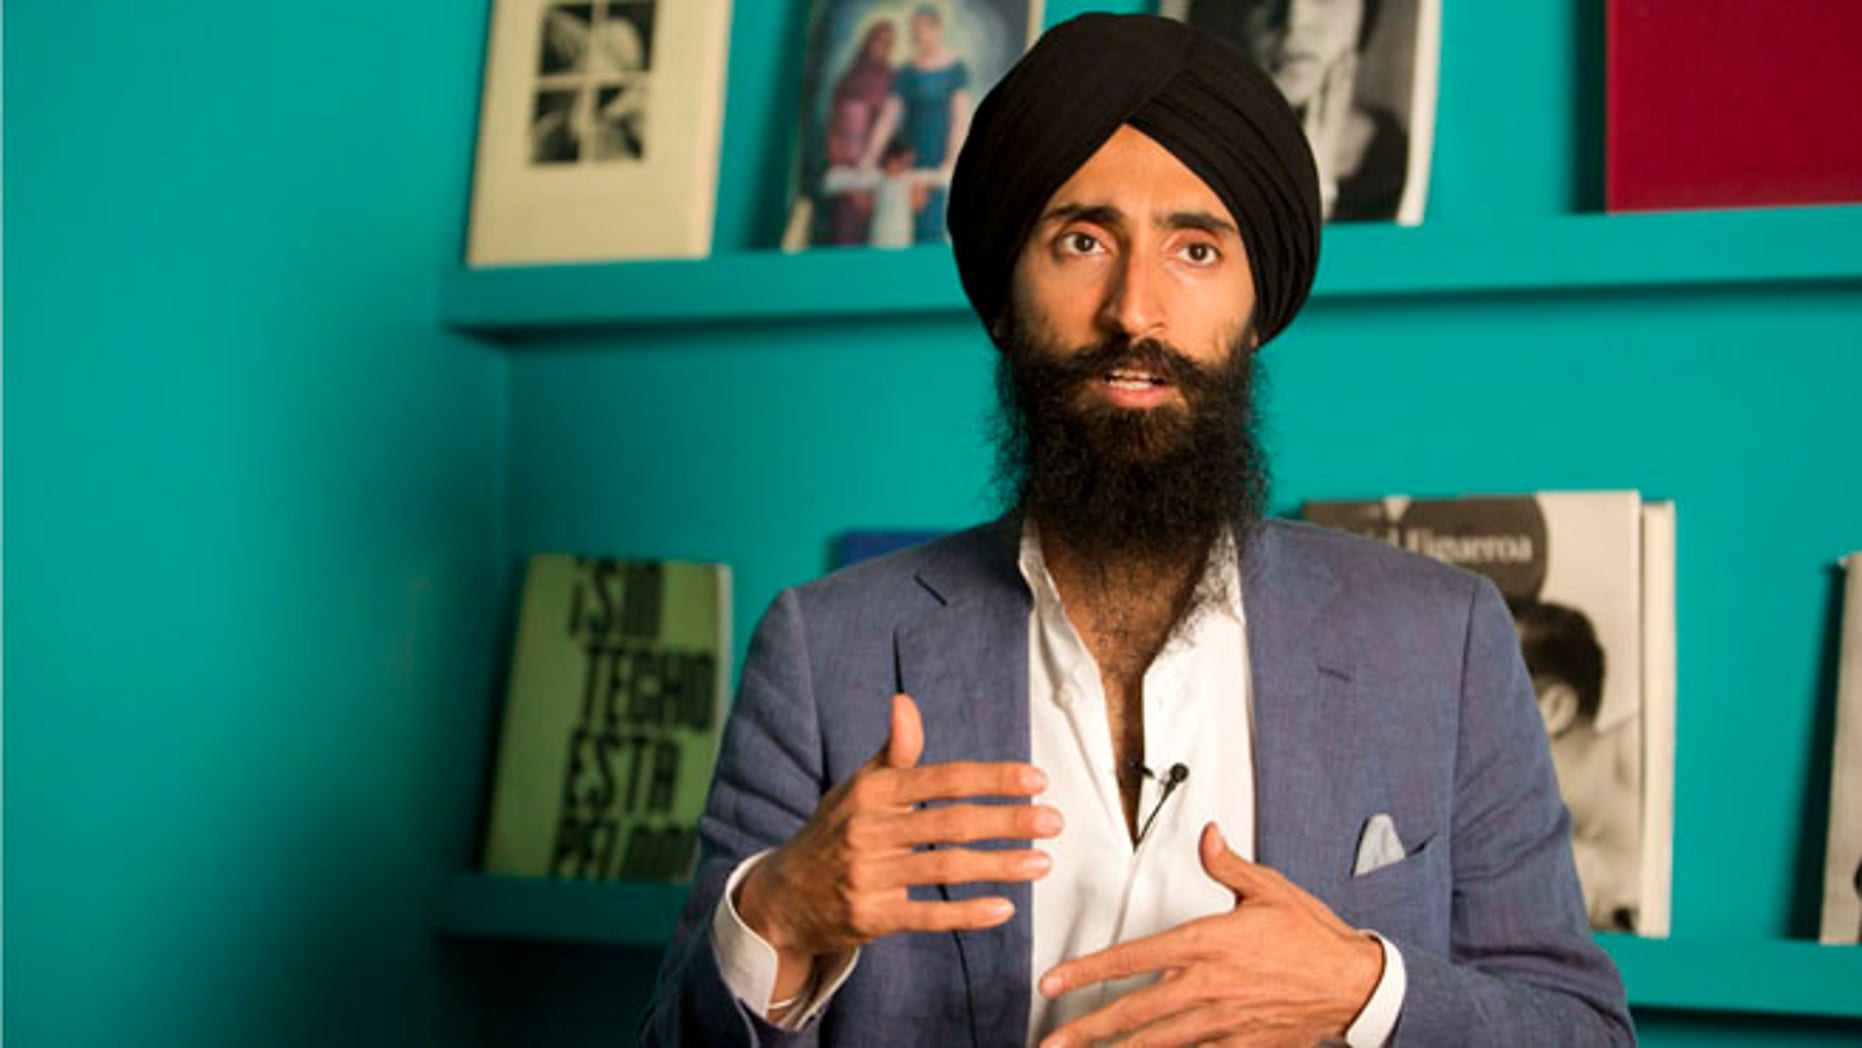 Waris Ahluwalia, a member of the Sikh community, gives an interview in Mexico City, Tuesday, Feb. 9, 2016.